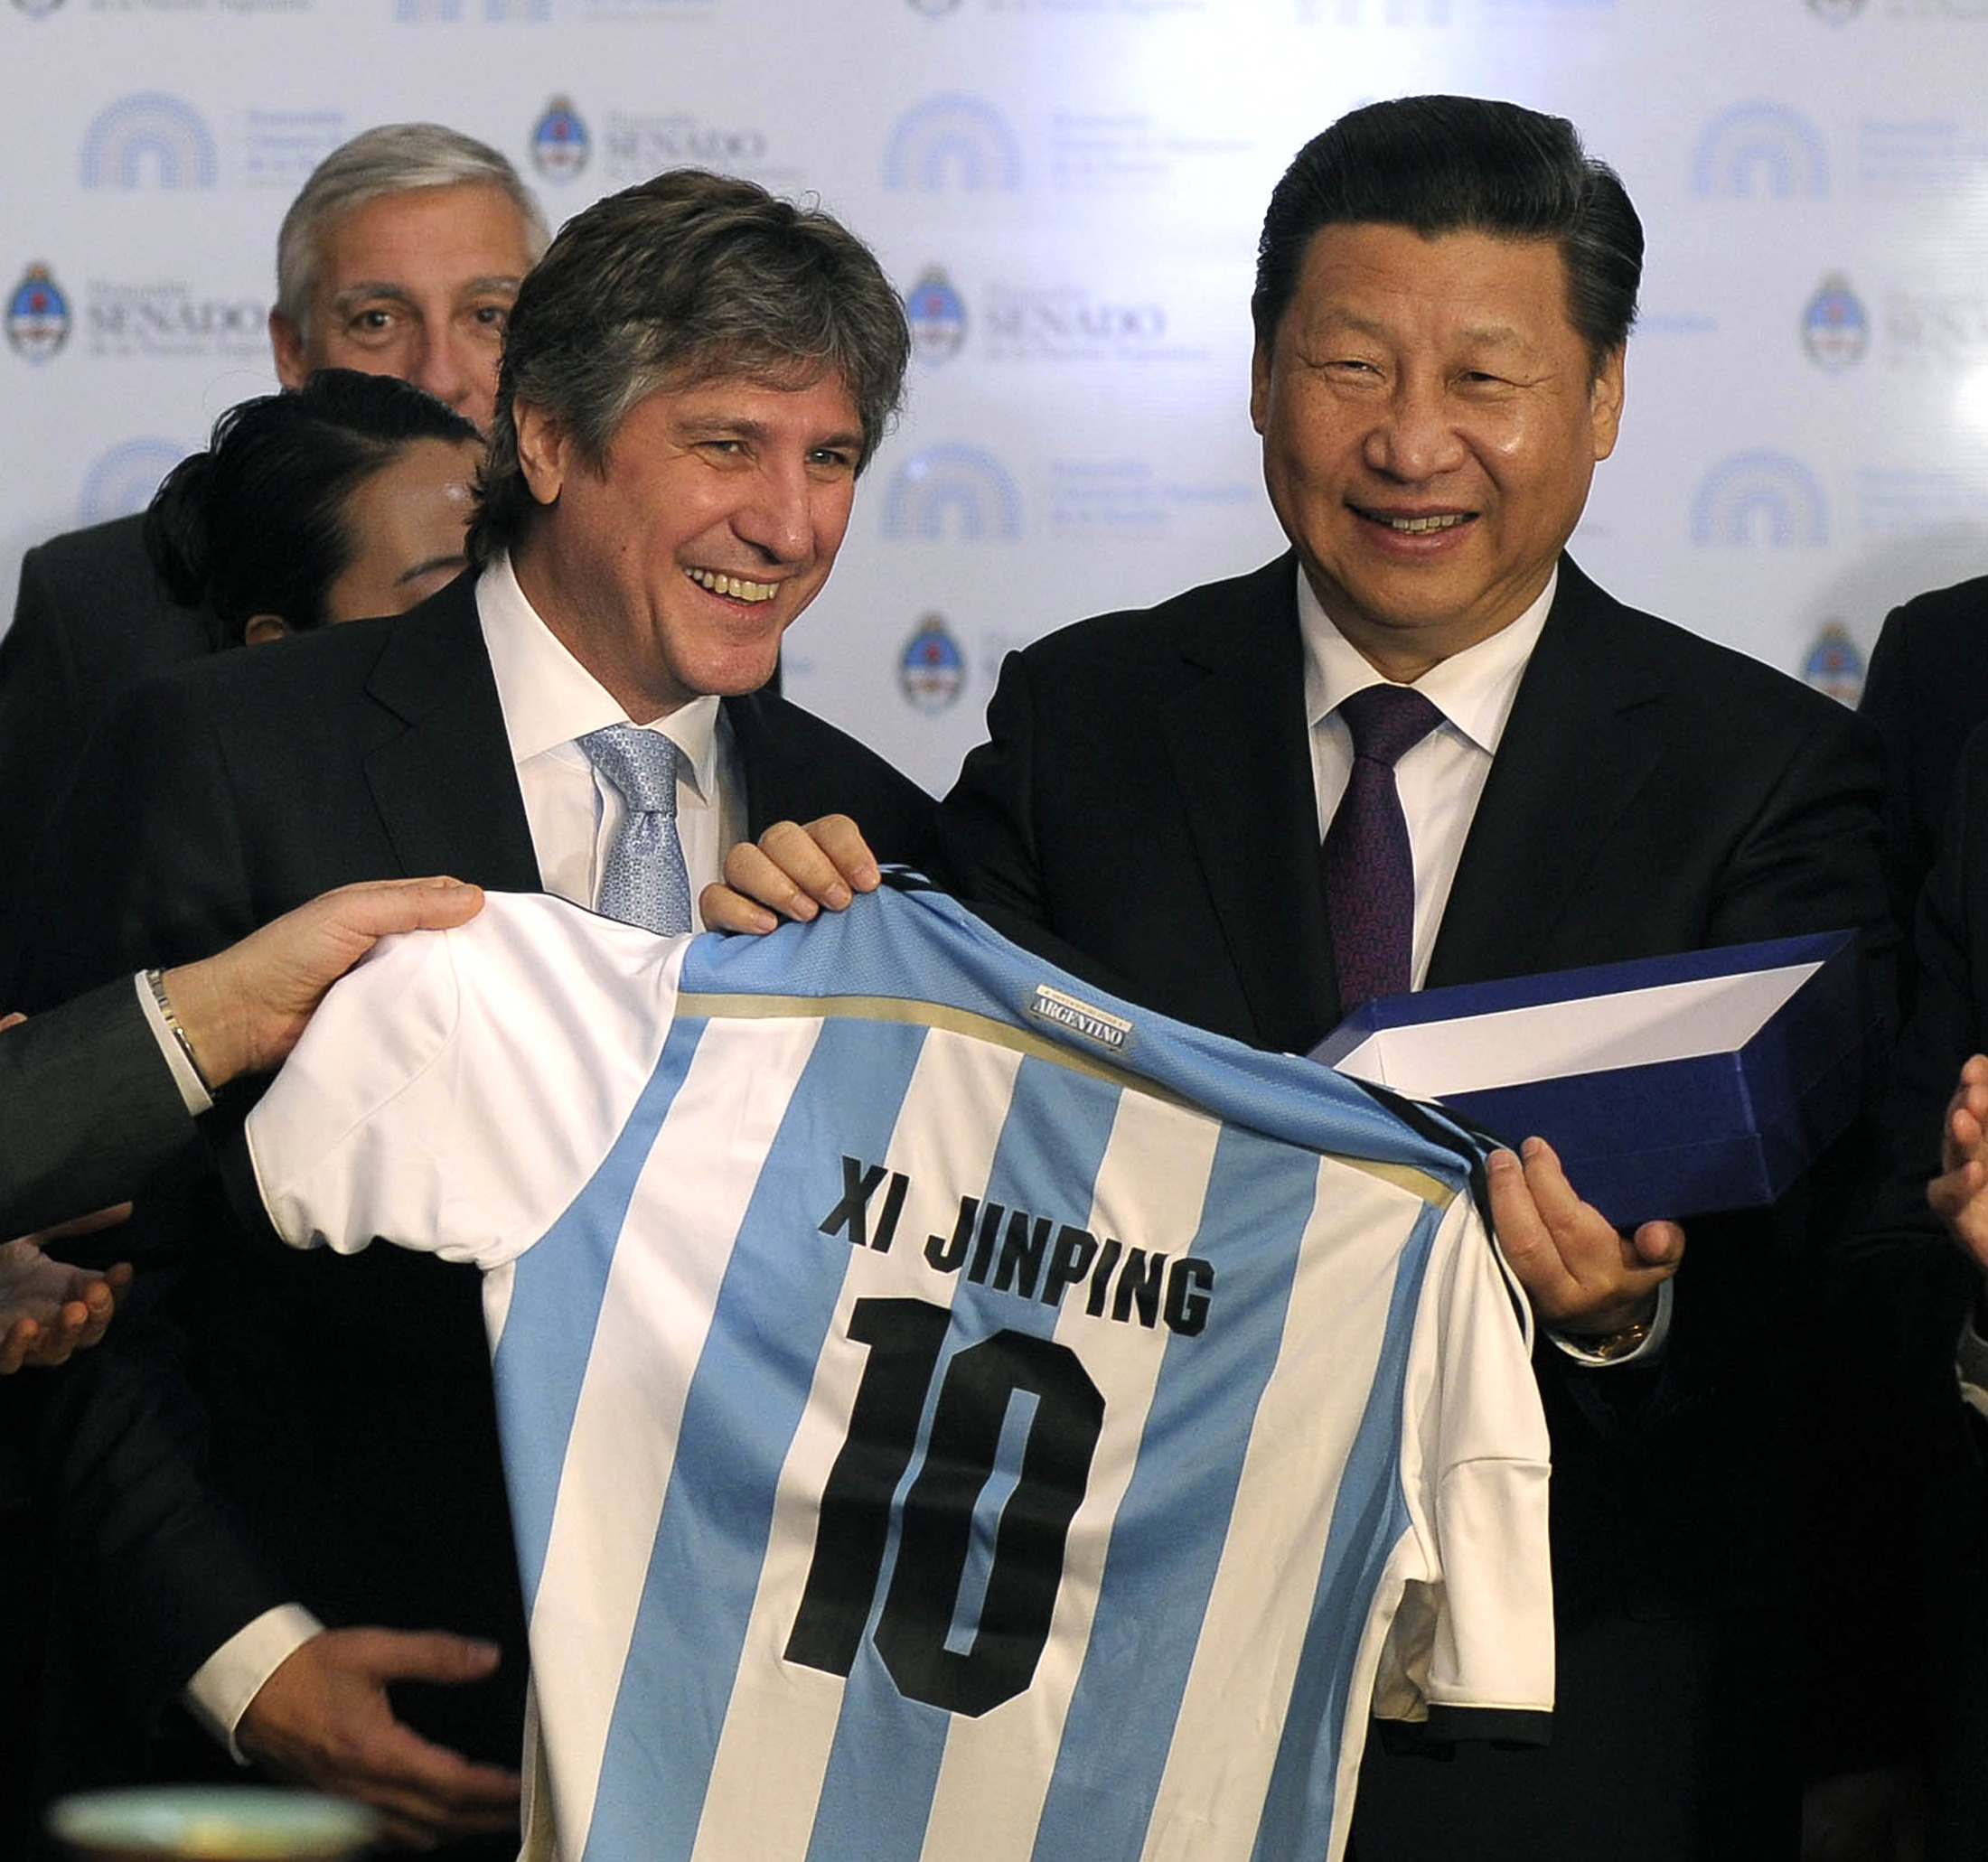 China s president xi jinping receives an argentine soccer jersey with his name on it from argentina s